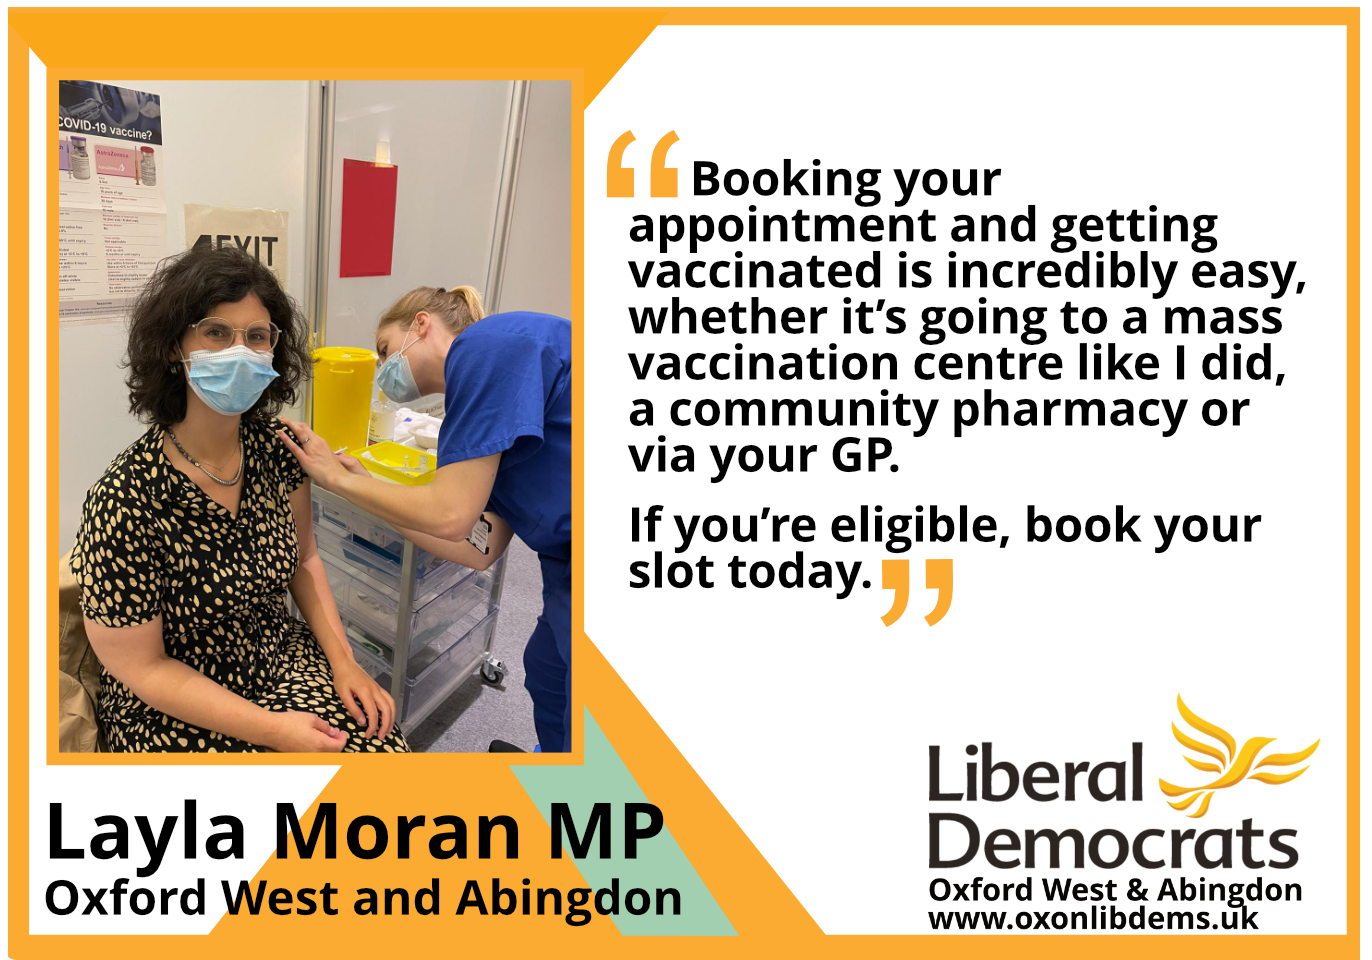 Booking your appointment and getting vaccinated is incredibly easy, whether it's going to a mass vaccination centre like I did, a community pharmacy or via your GP. If you're eligible, book your slot today - Picture copyright Layla Moran MP